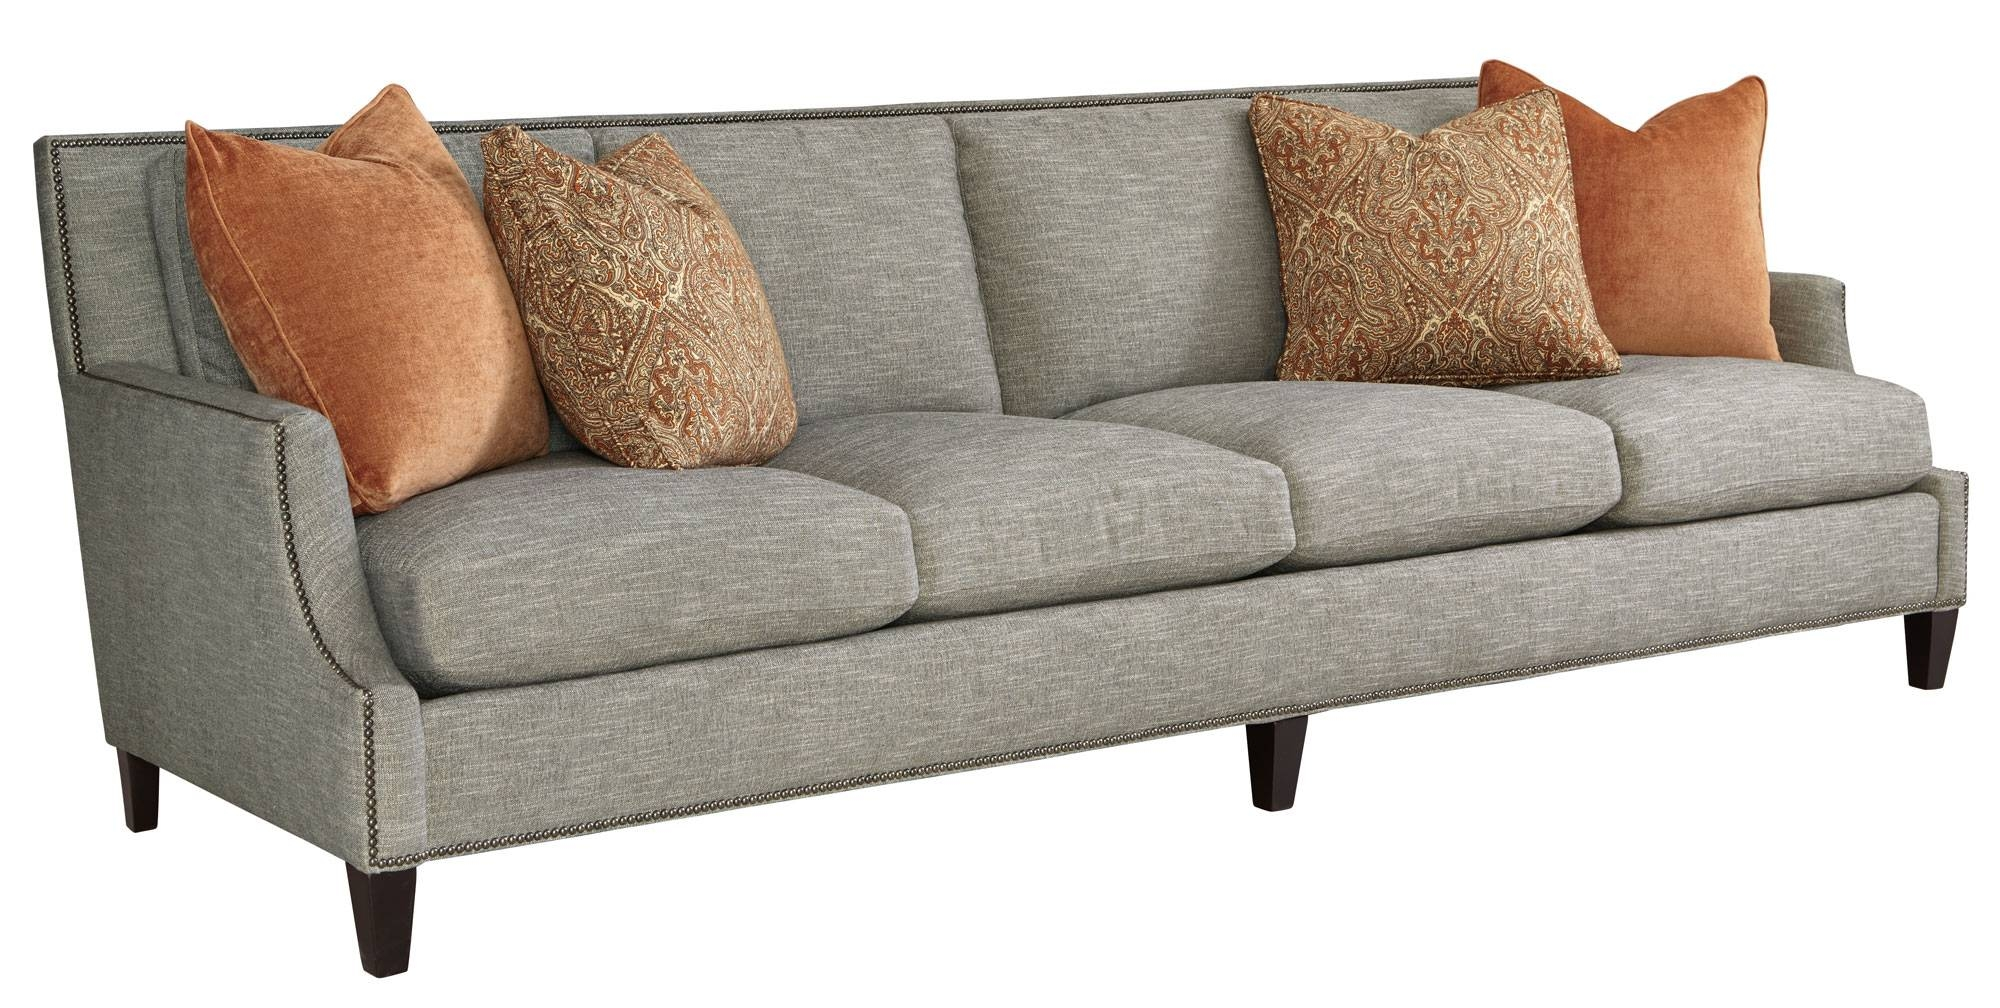 Sofa (108 In.) | Bernhardt with regard to Bernhardt Sofas (Image 5 of 15)